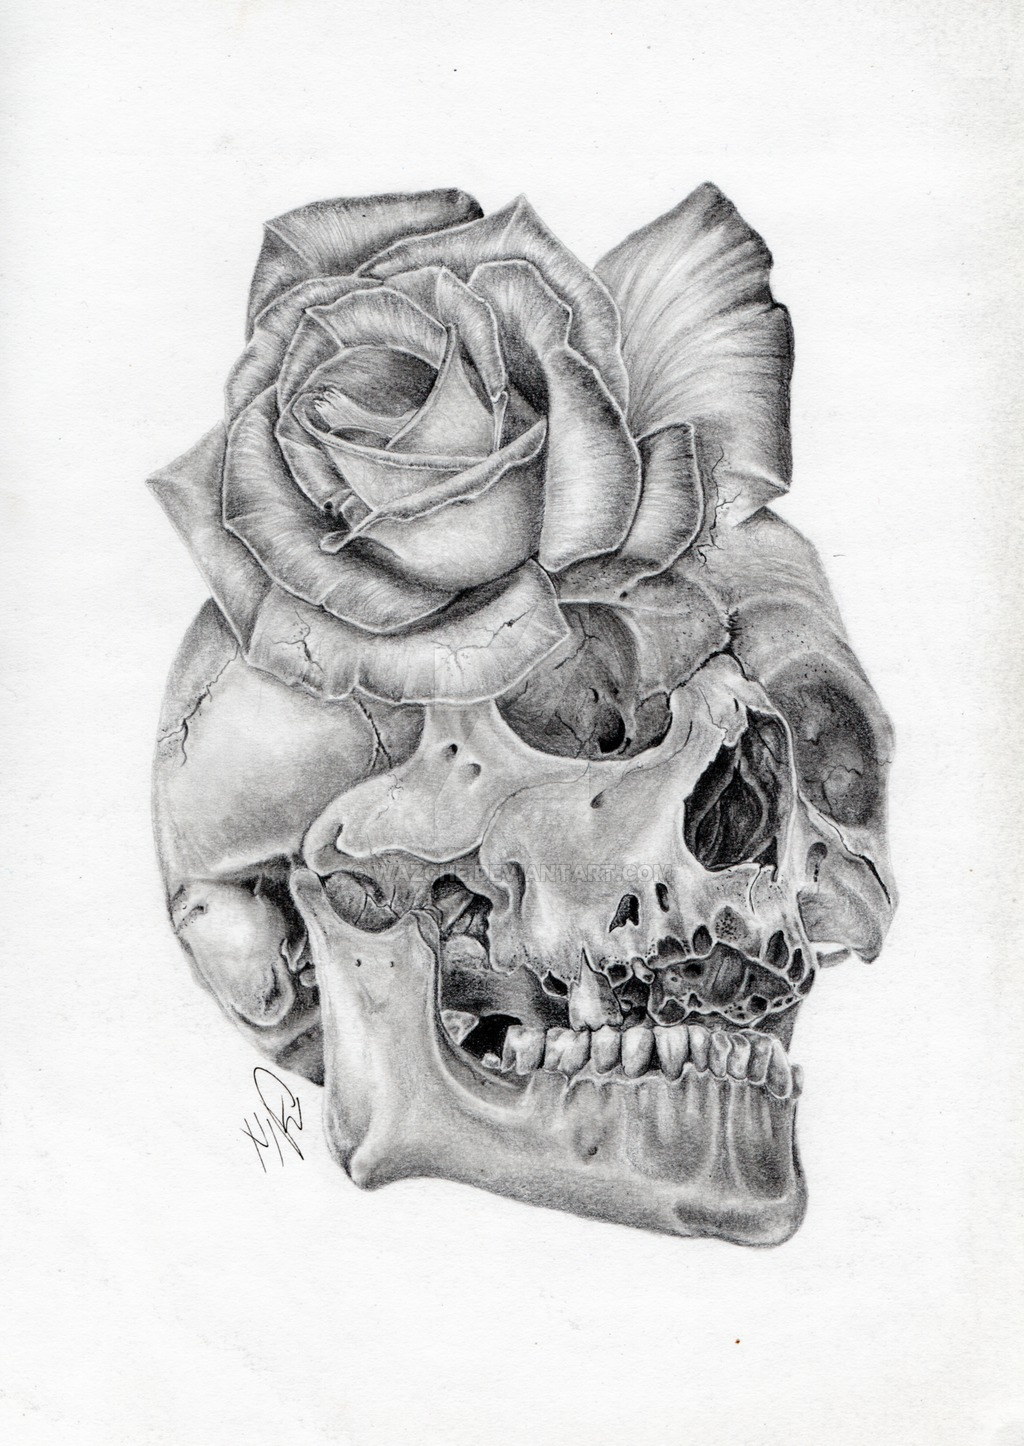 Drawn watch skull  Skull by pencil drawing